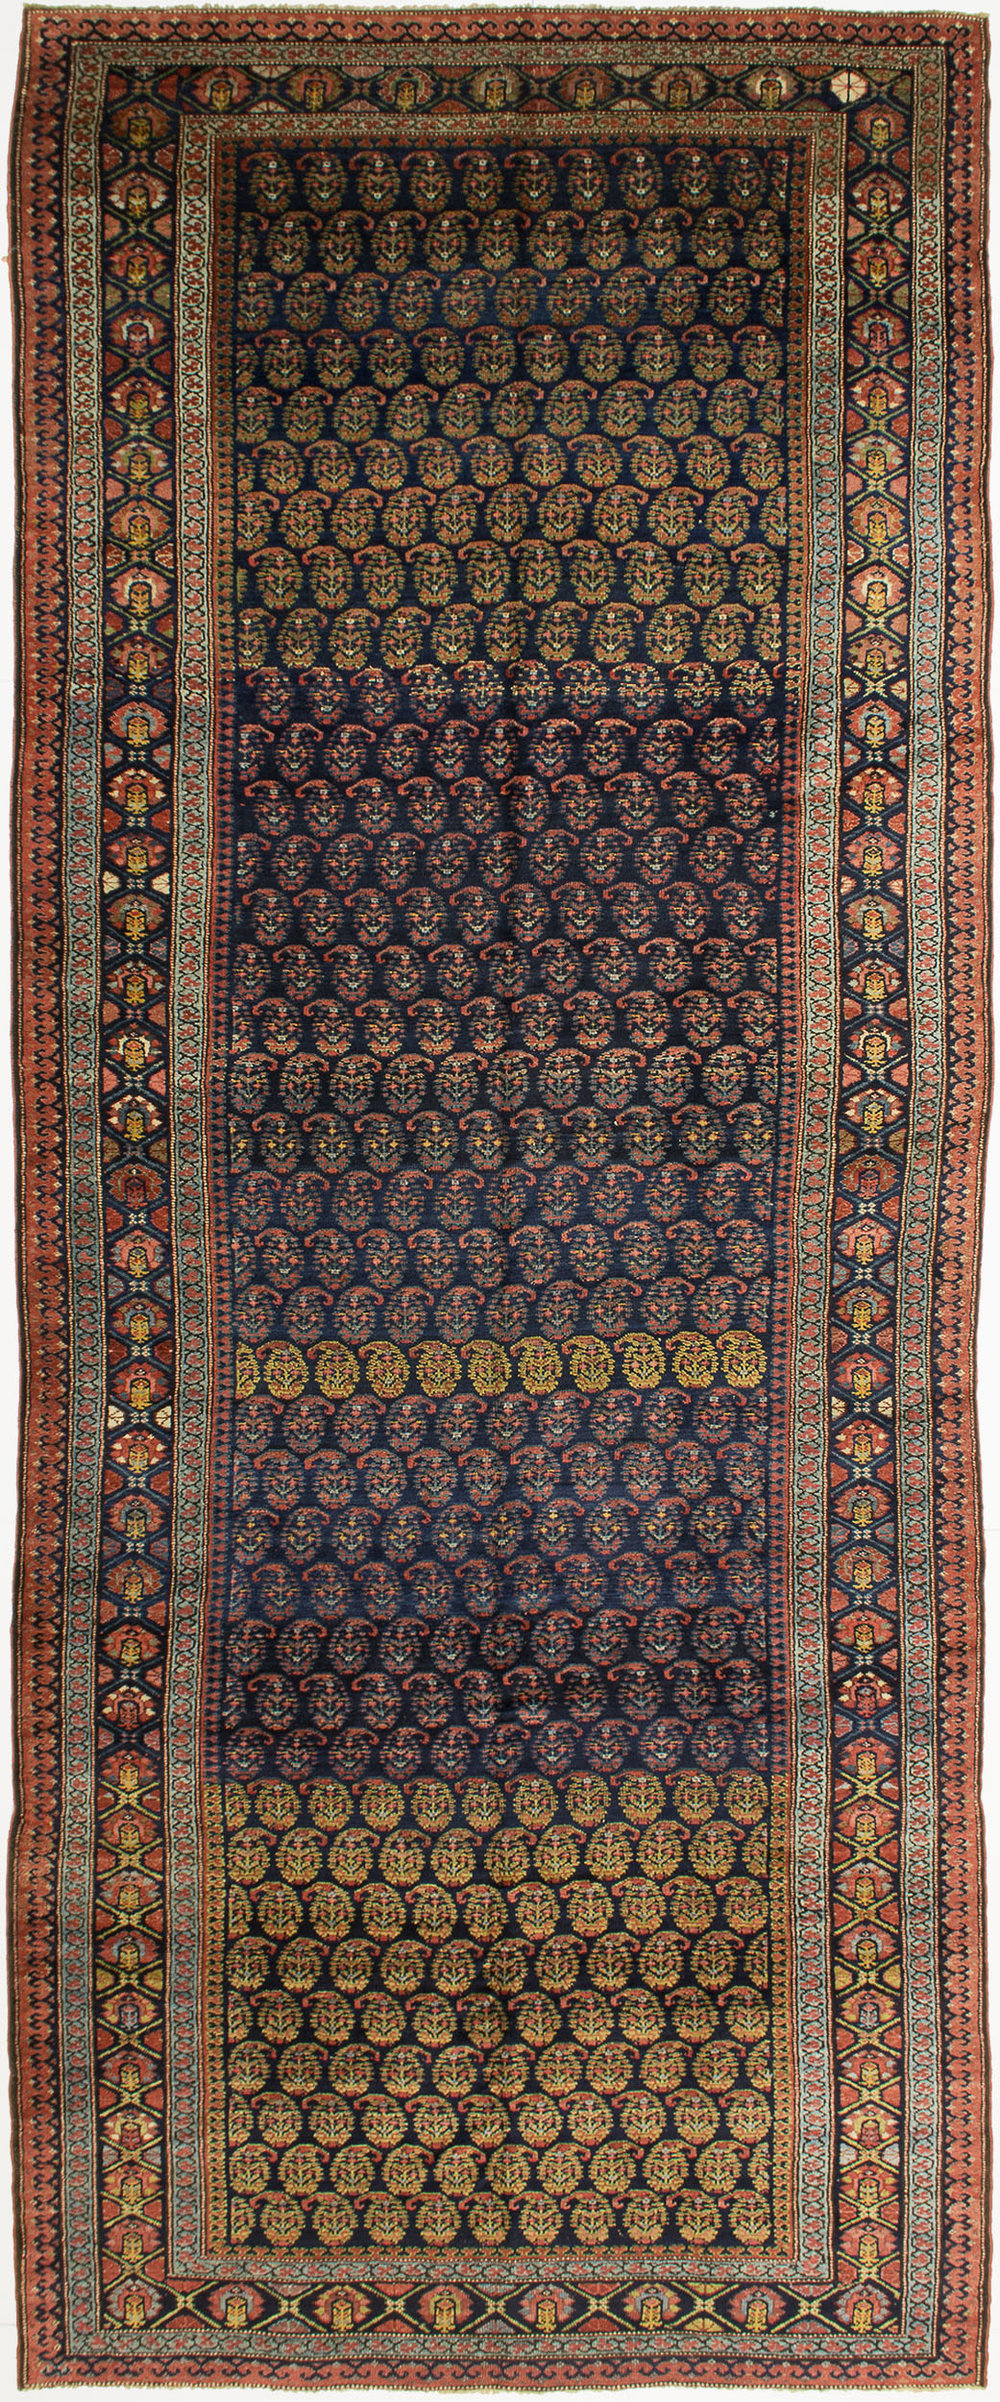 "Kurdish Gallery Carpet 14' 5"" x 5' 8"""